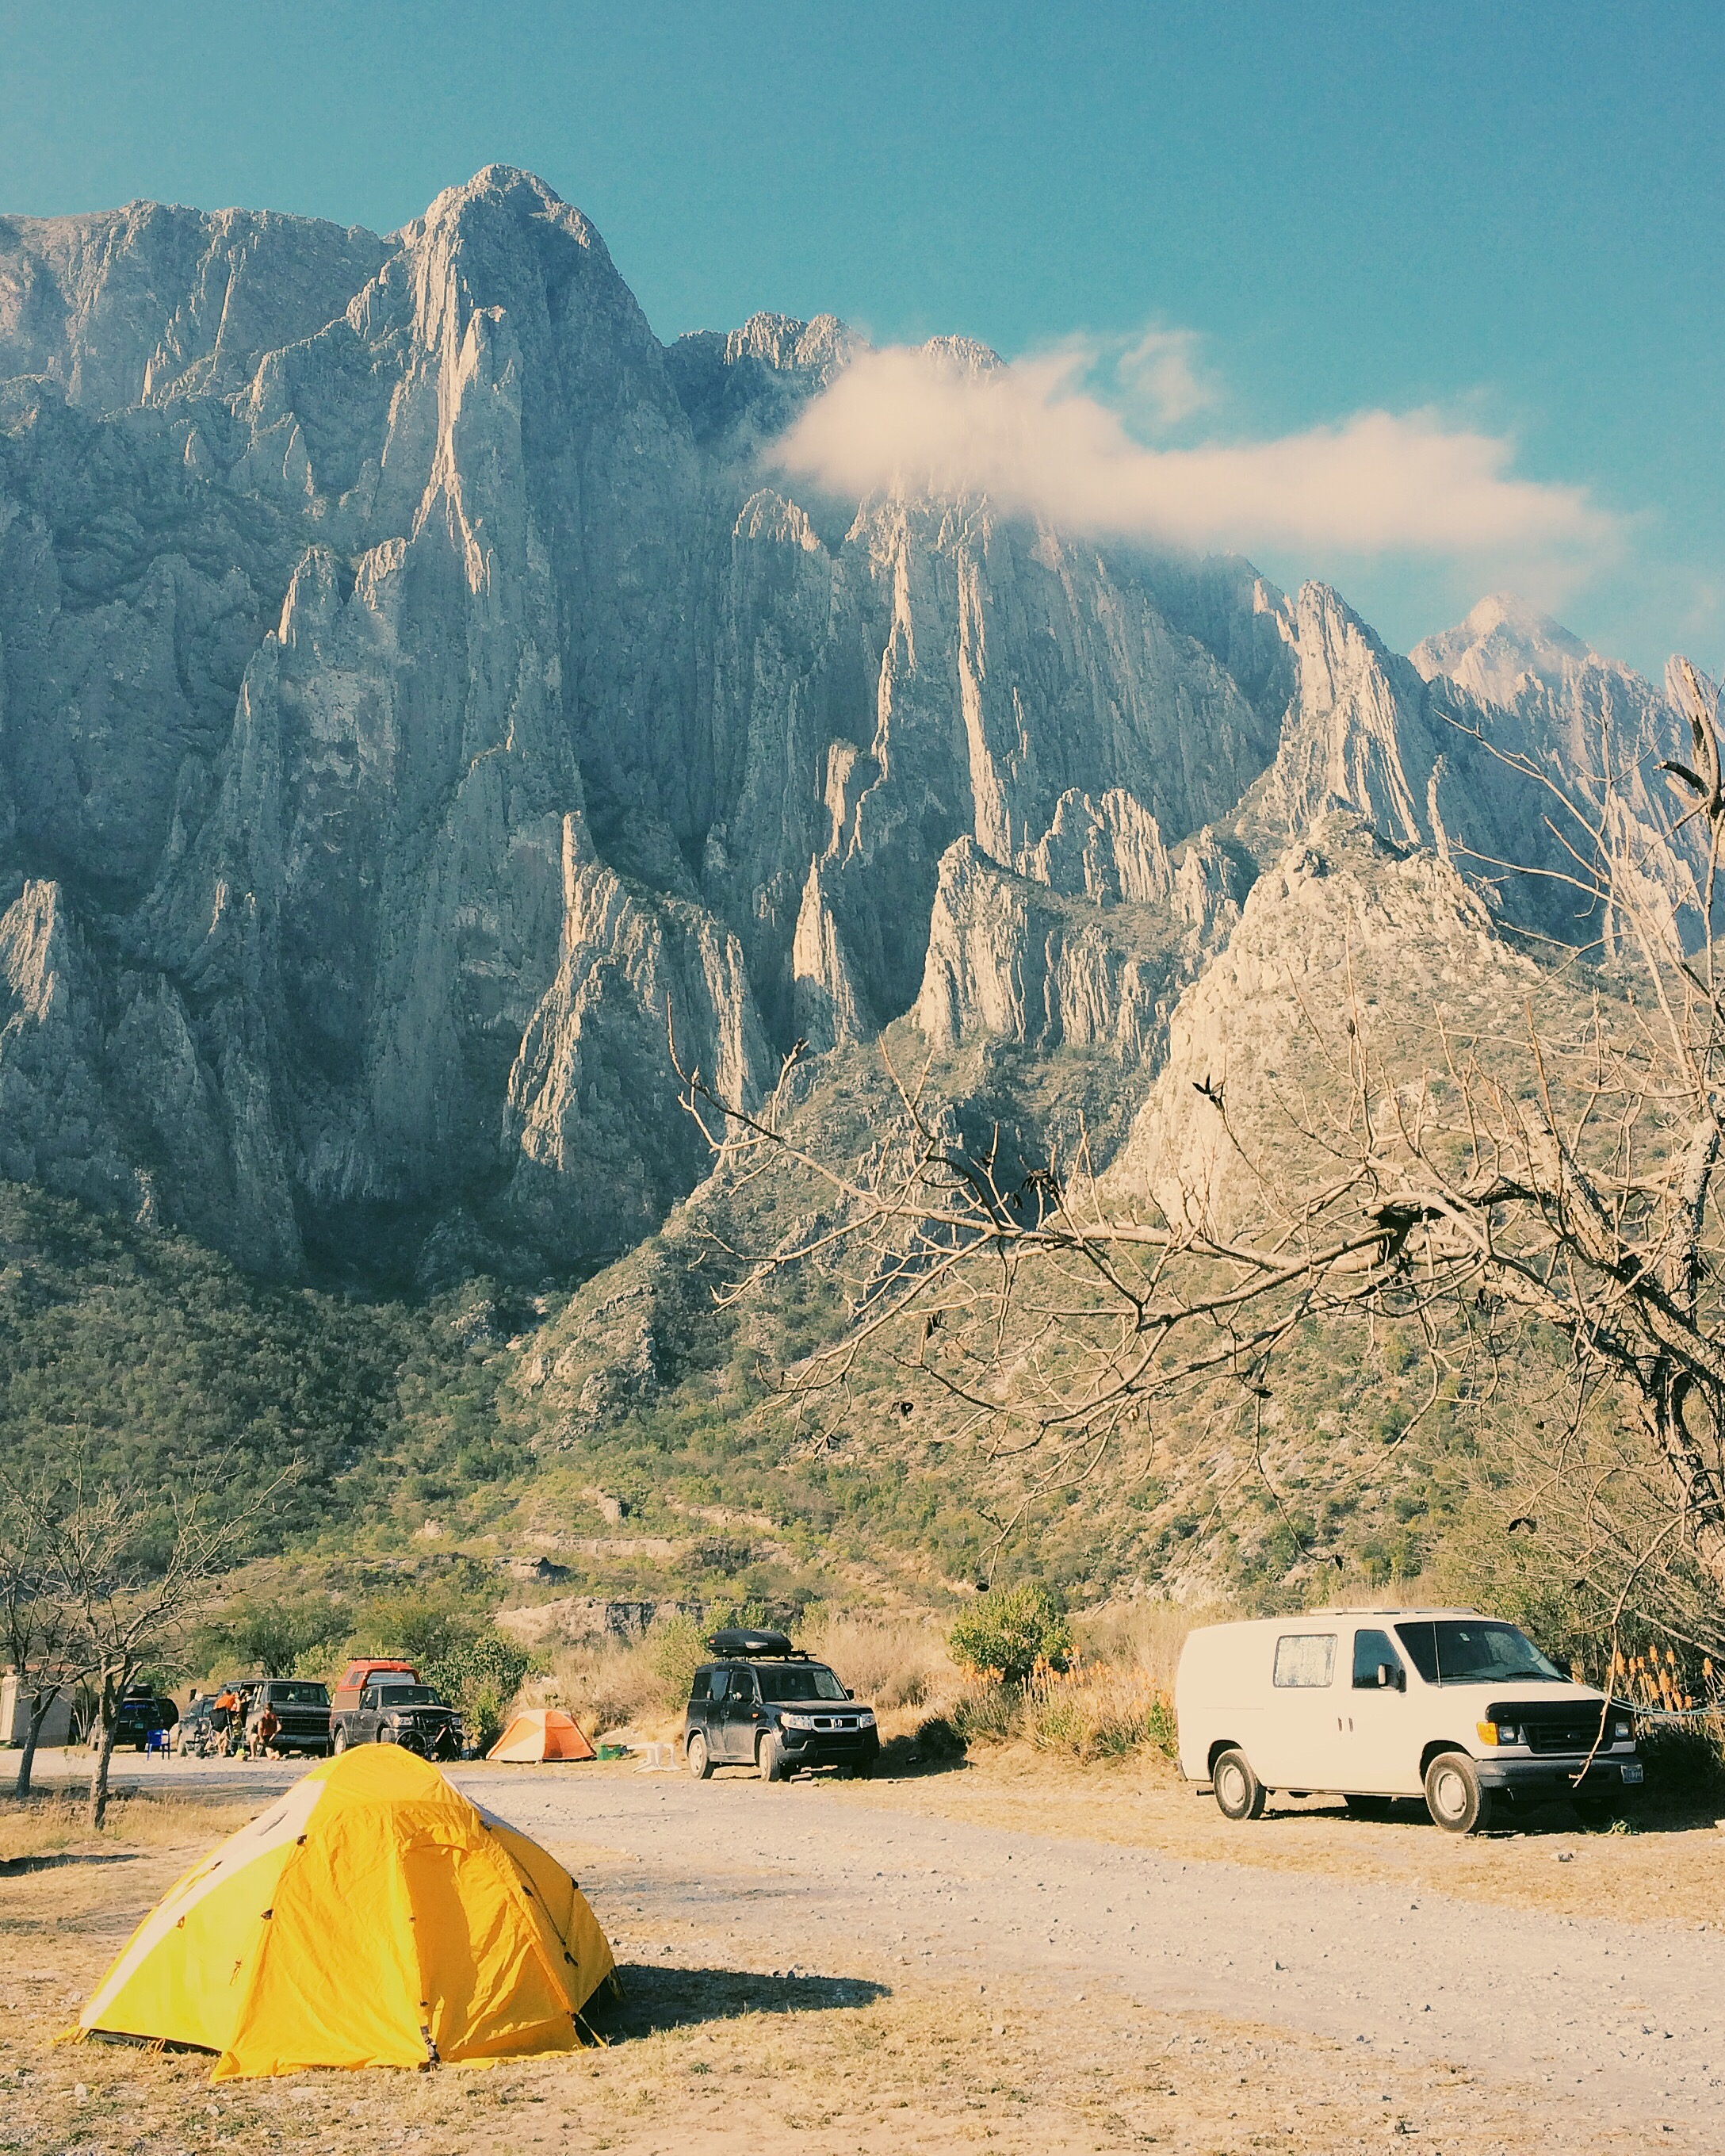 Camp scene at Homeros, with El Toro in the background. See the skull in the rock?